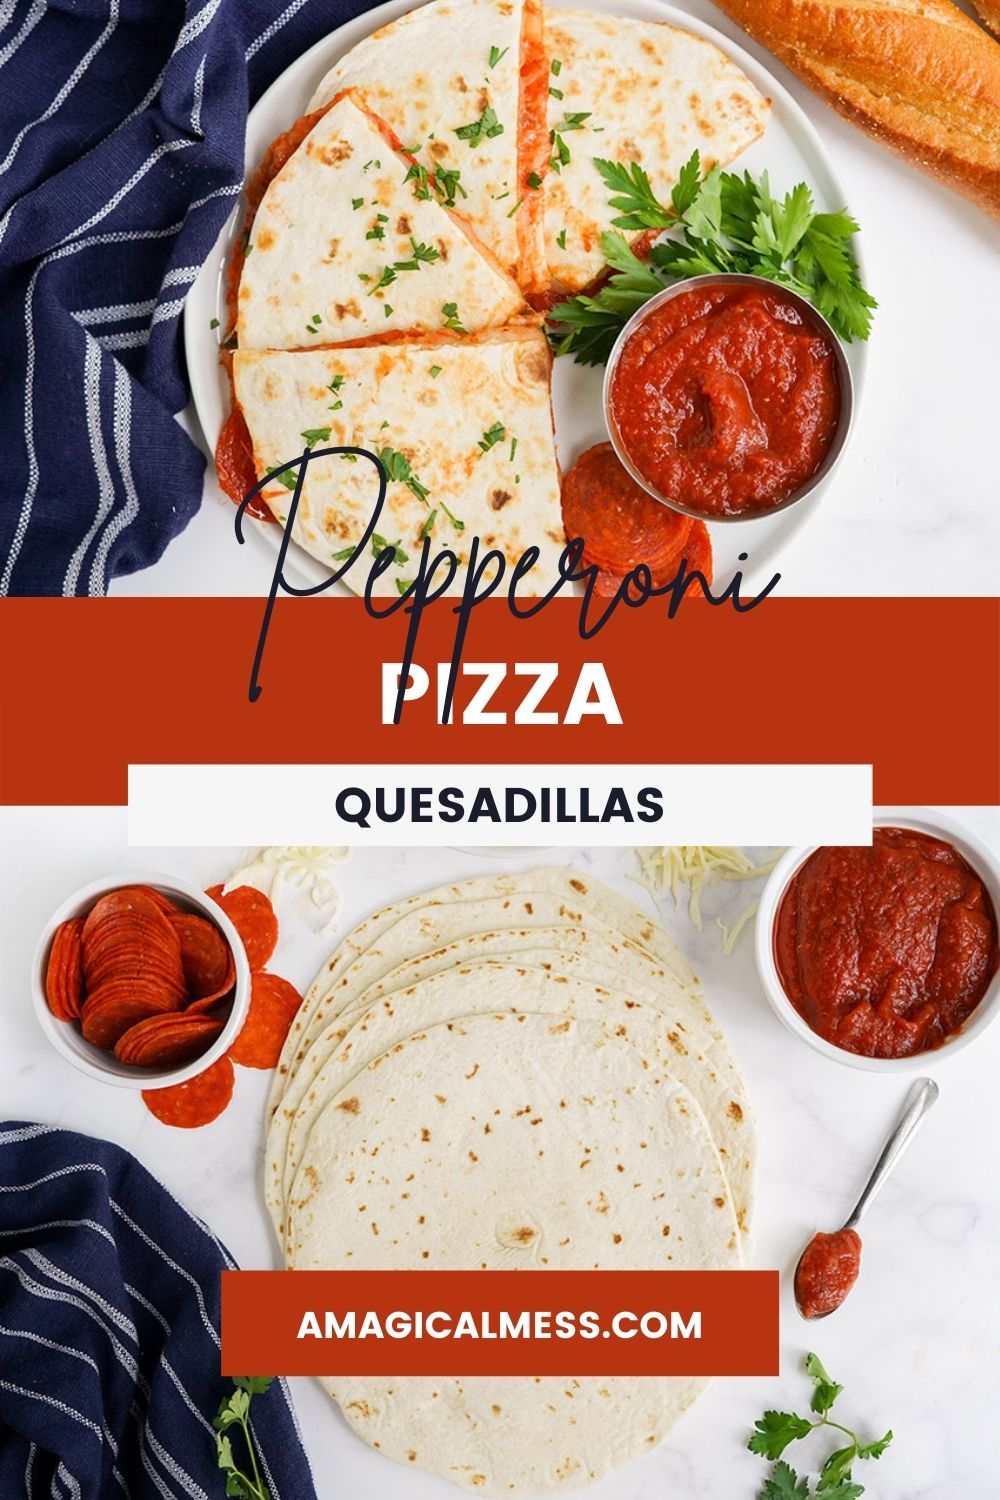 Pizza quesadillas with sauce, tortillas, pepperoni, and garnish on a table.